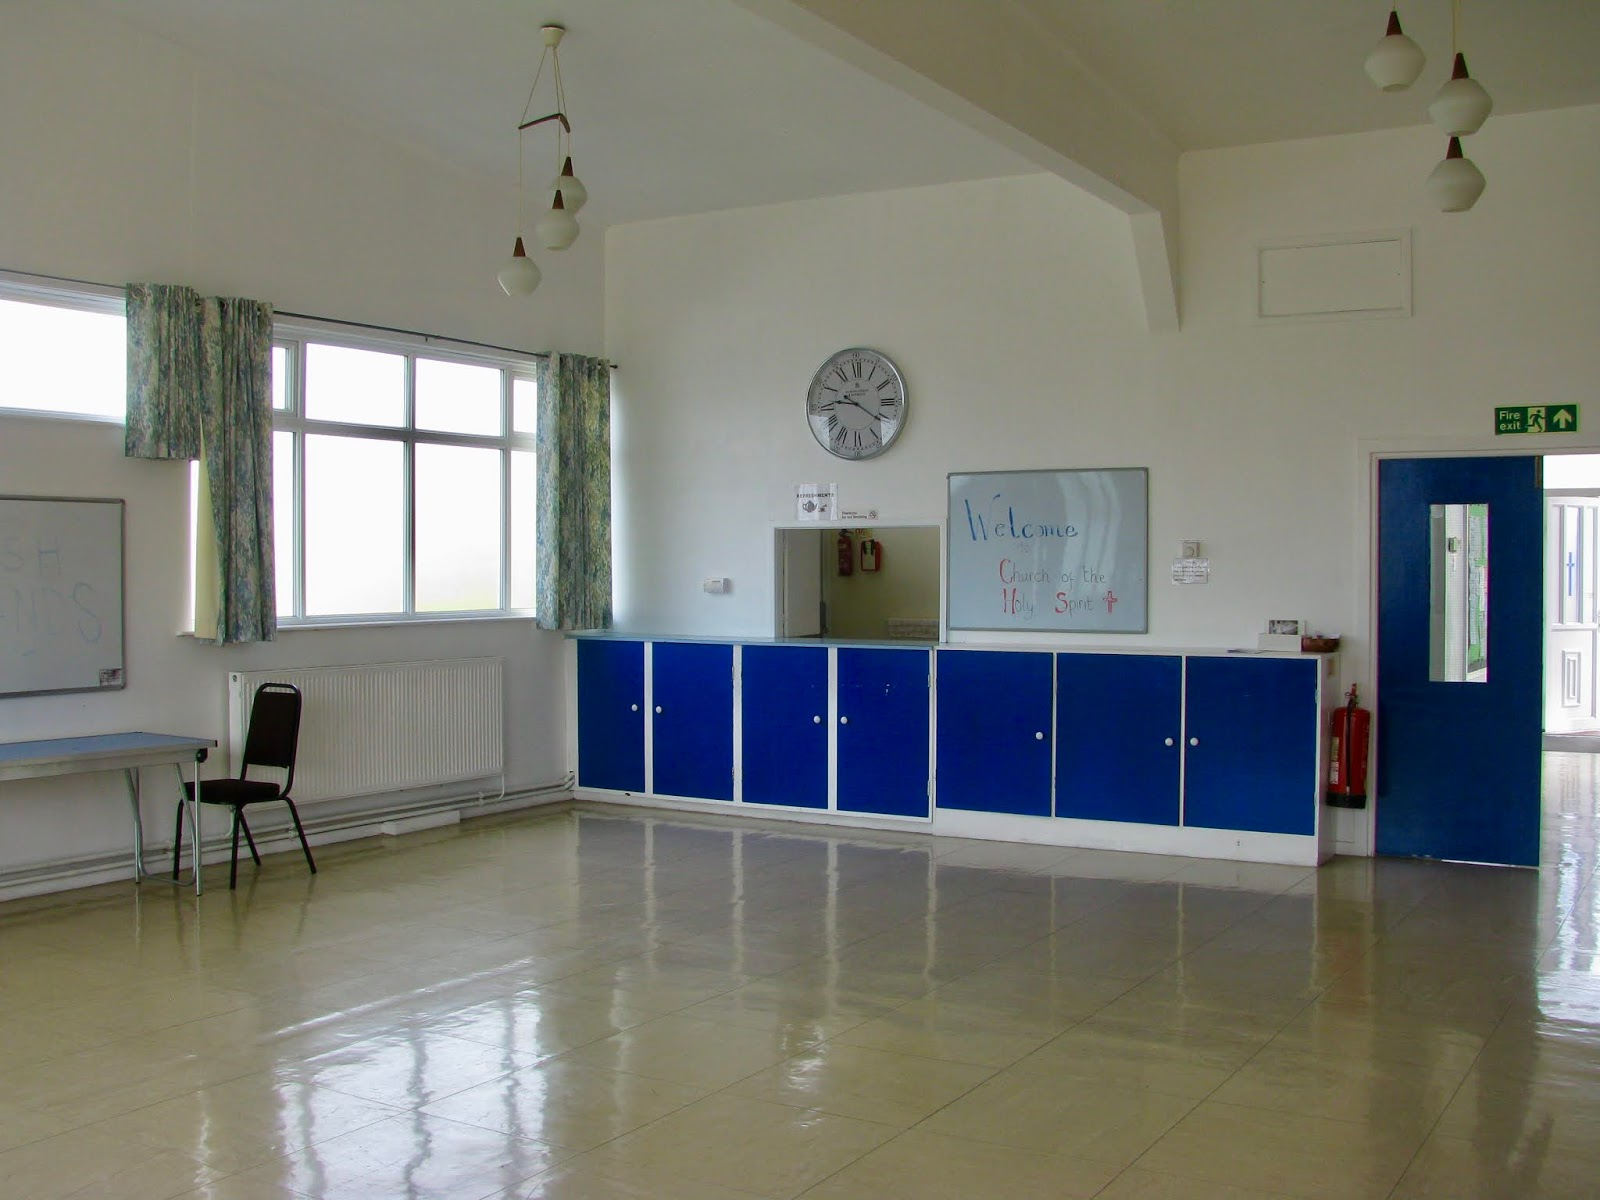 Showing off further space including storage and white board. Windowed space to two walls letting in sun light. to left of image  is a windowed  unit to the canteen with storage below in blue doors.